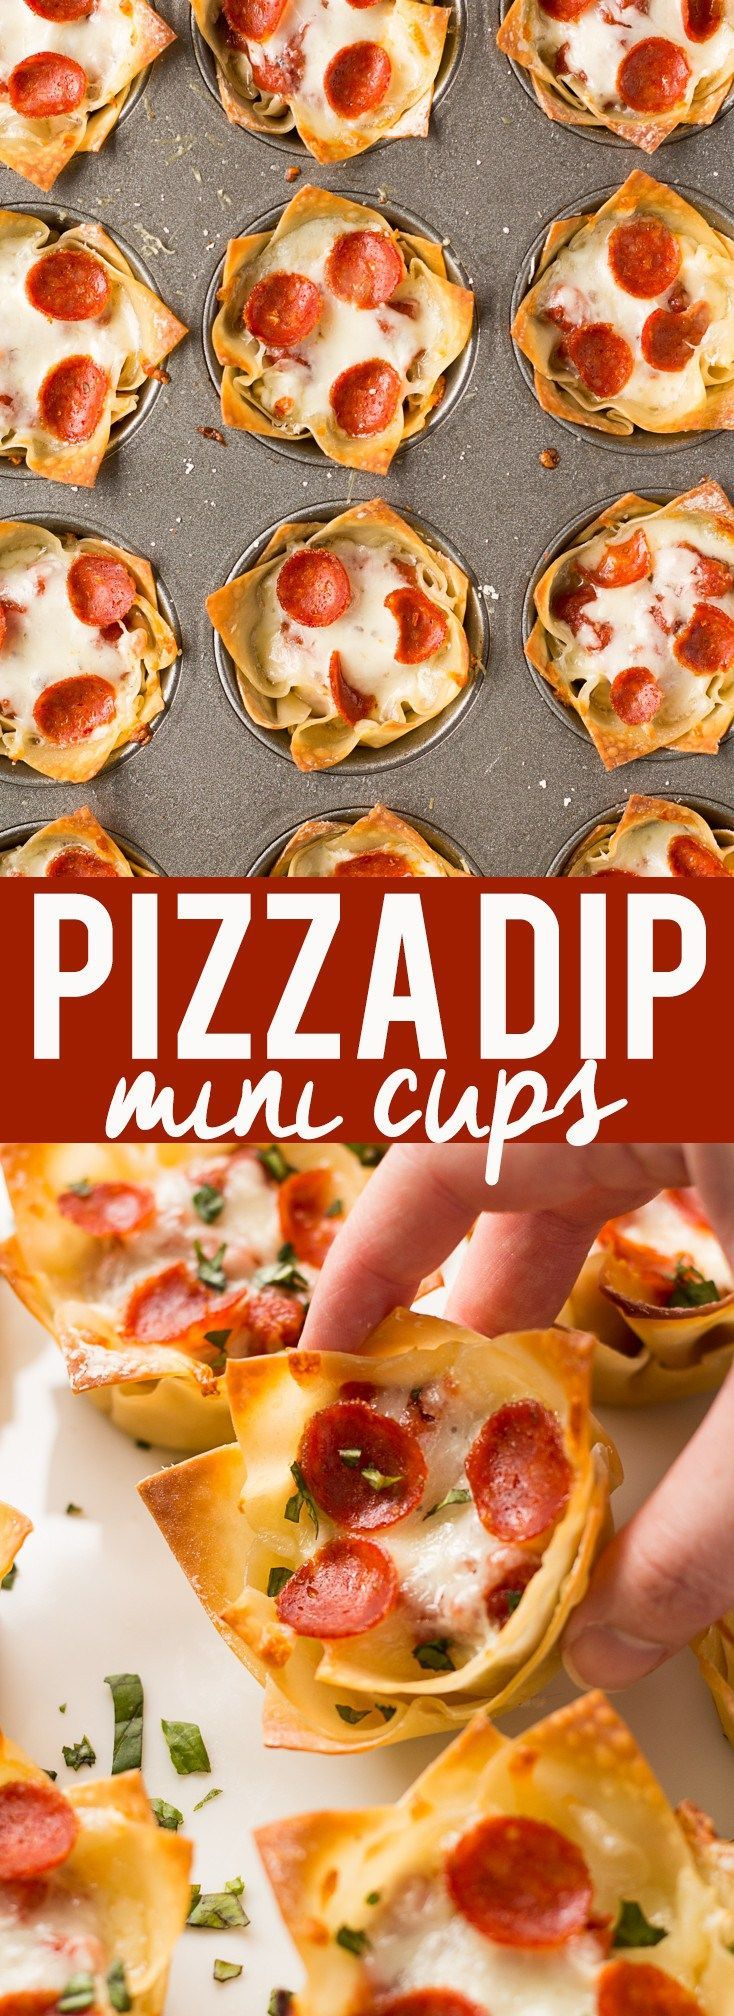 These cute Mini Pizza Dip Cups are cheesy and delicious! Perfect for your next party, game day or tailgate!